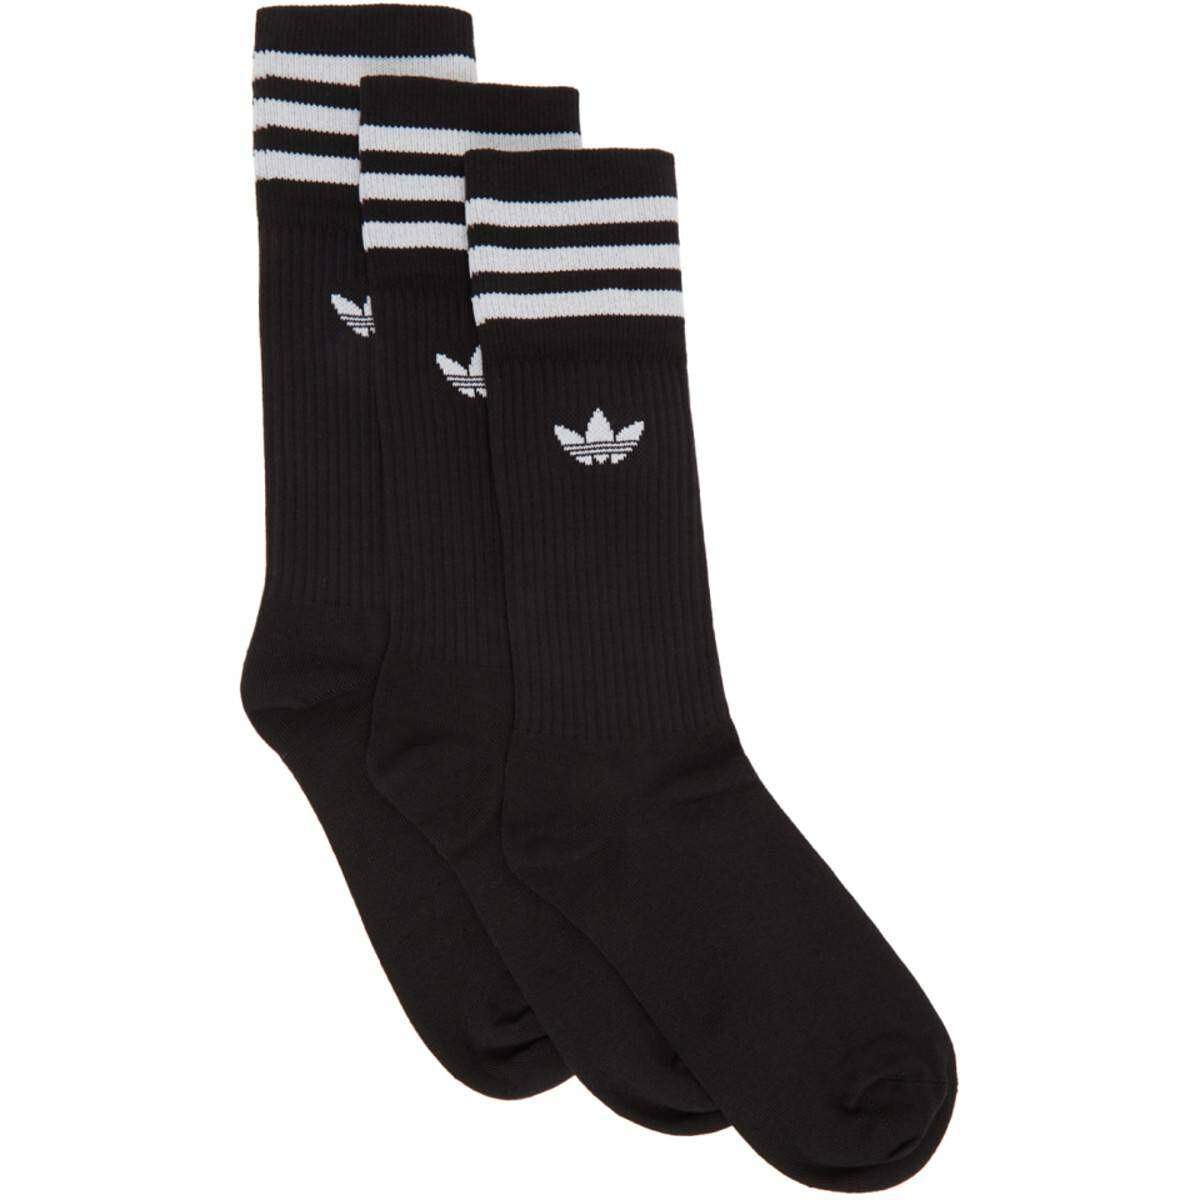 adidas Originals Three-Pack Black Solid Crew Socks Ssense USA MEN Men ACCESSORIES Mens SOCKS